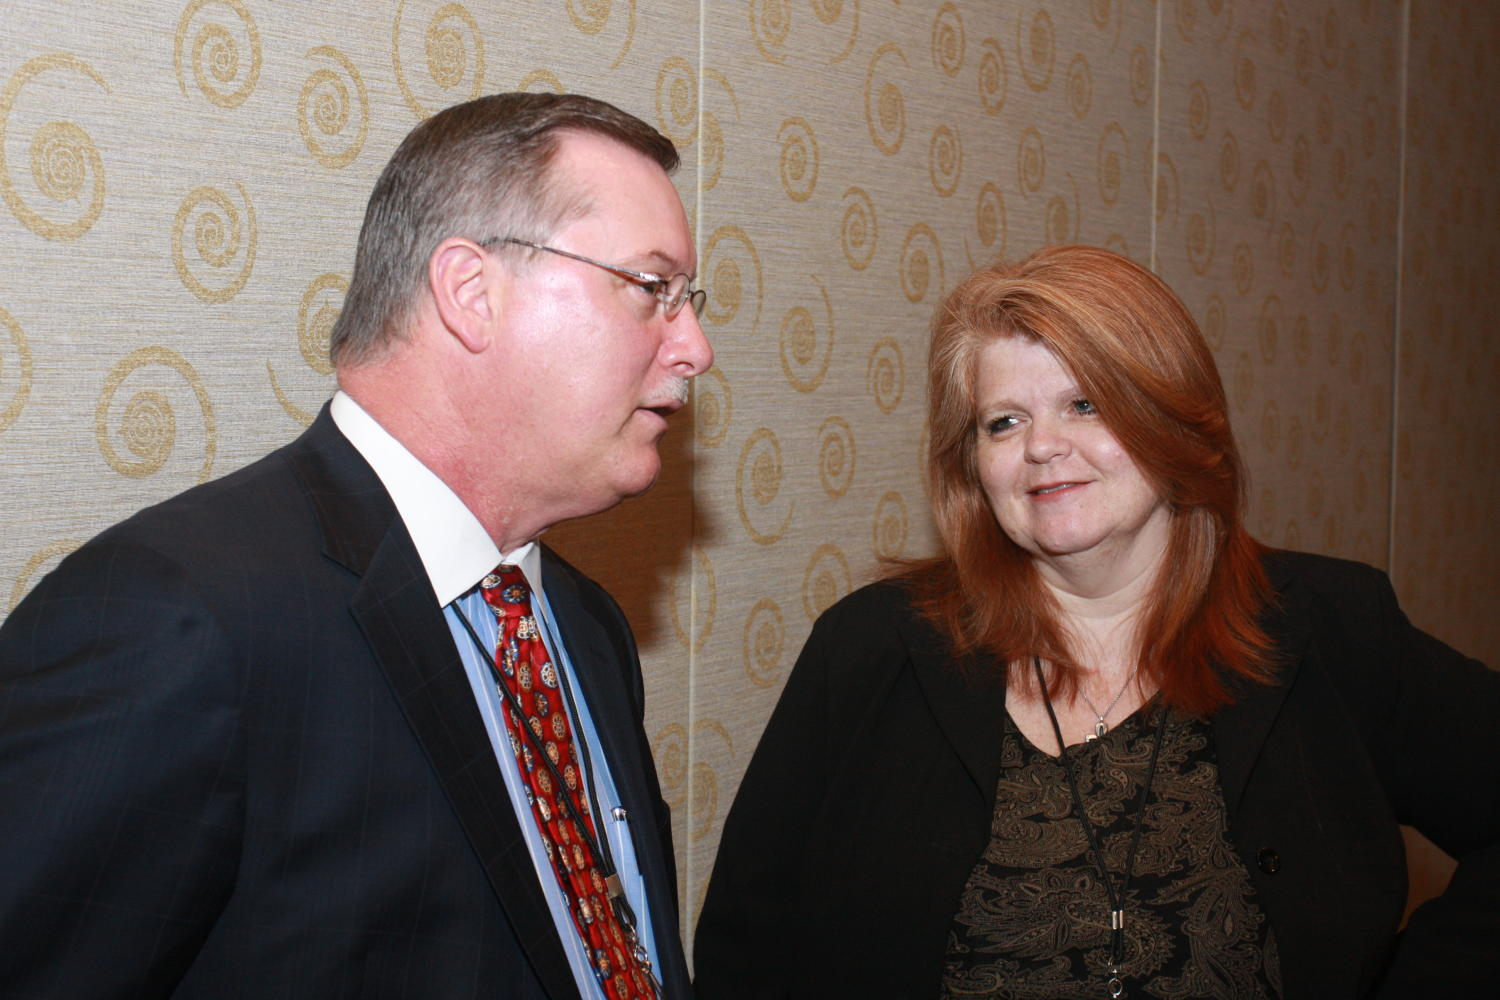 [Two guests attending TDNA conference], Photograph of two unidentified guests seen talking with one another during the 2010 Texas Daily Newspaper Association annual meeting held in Houston, Texas.,